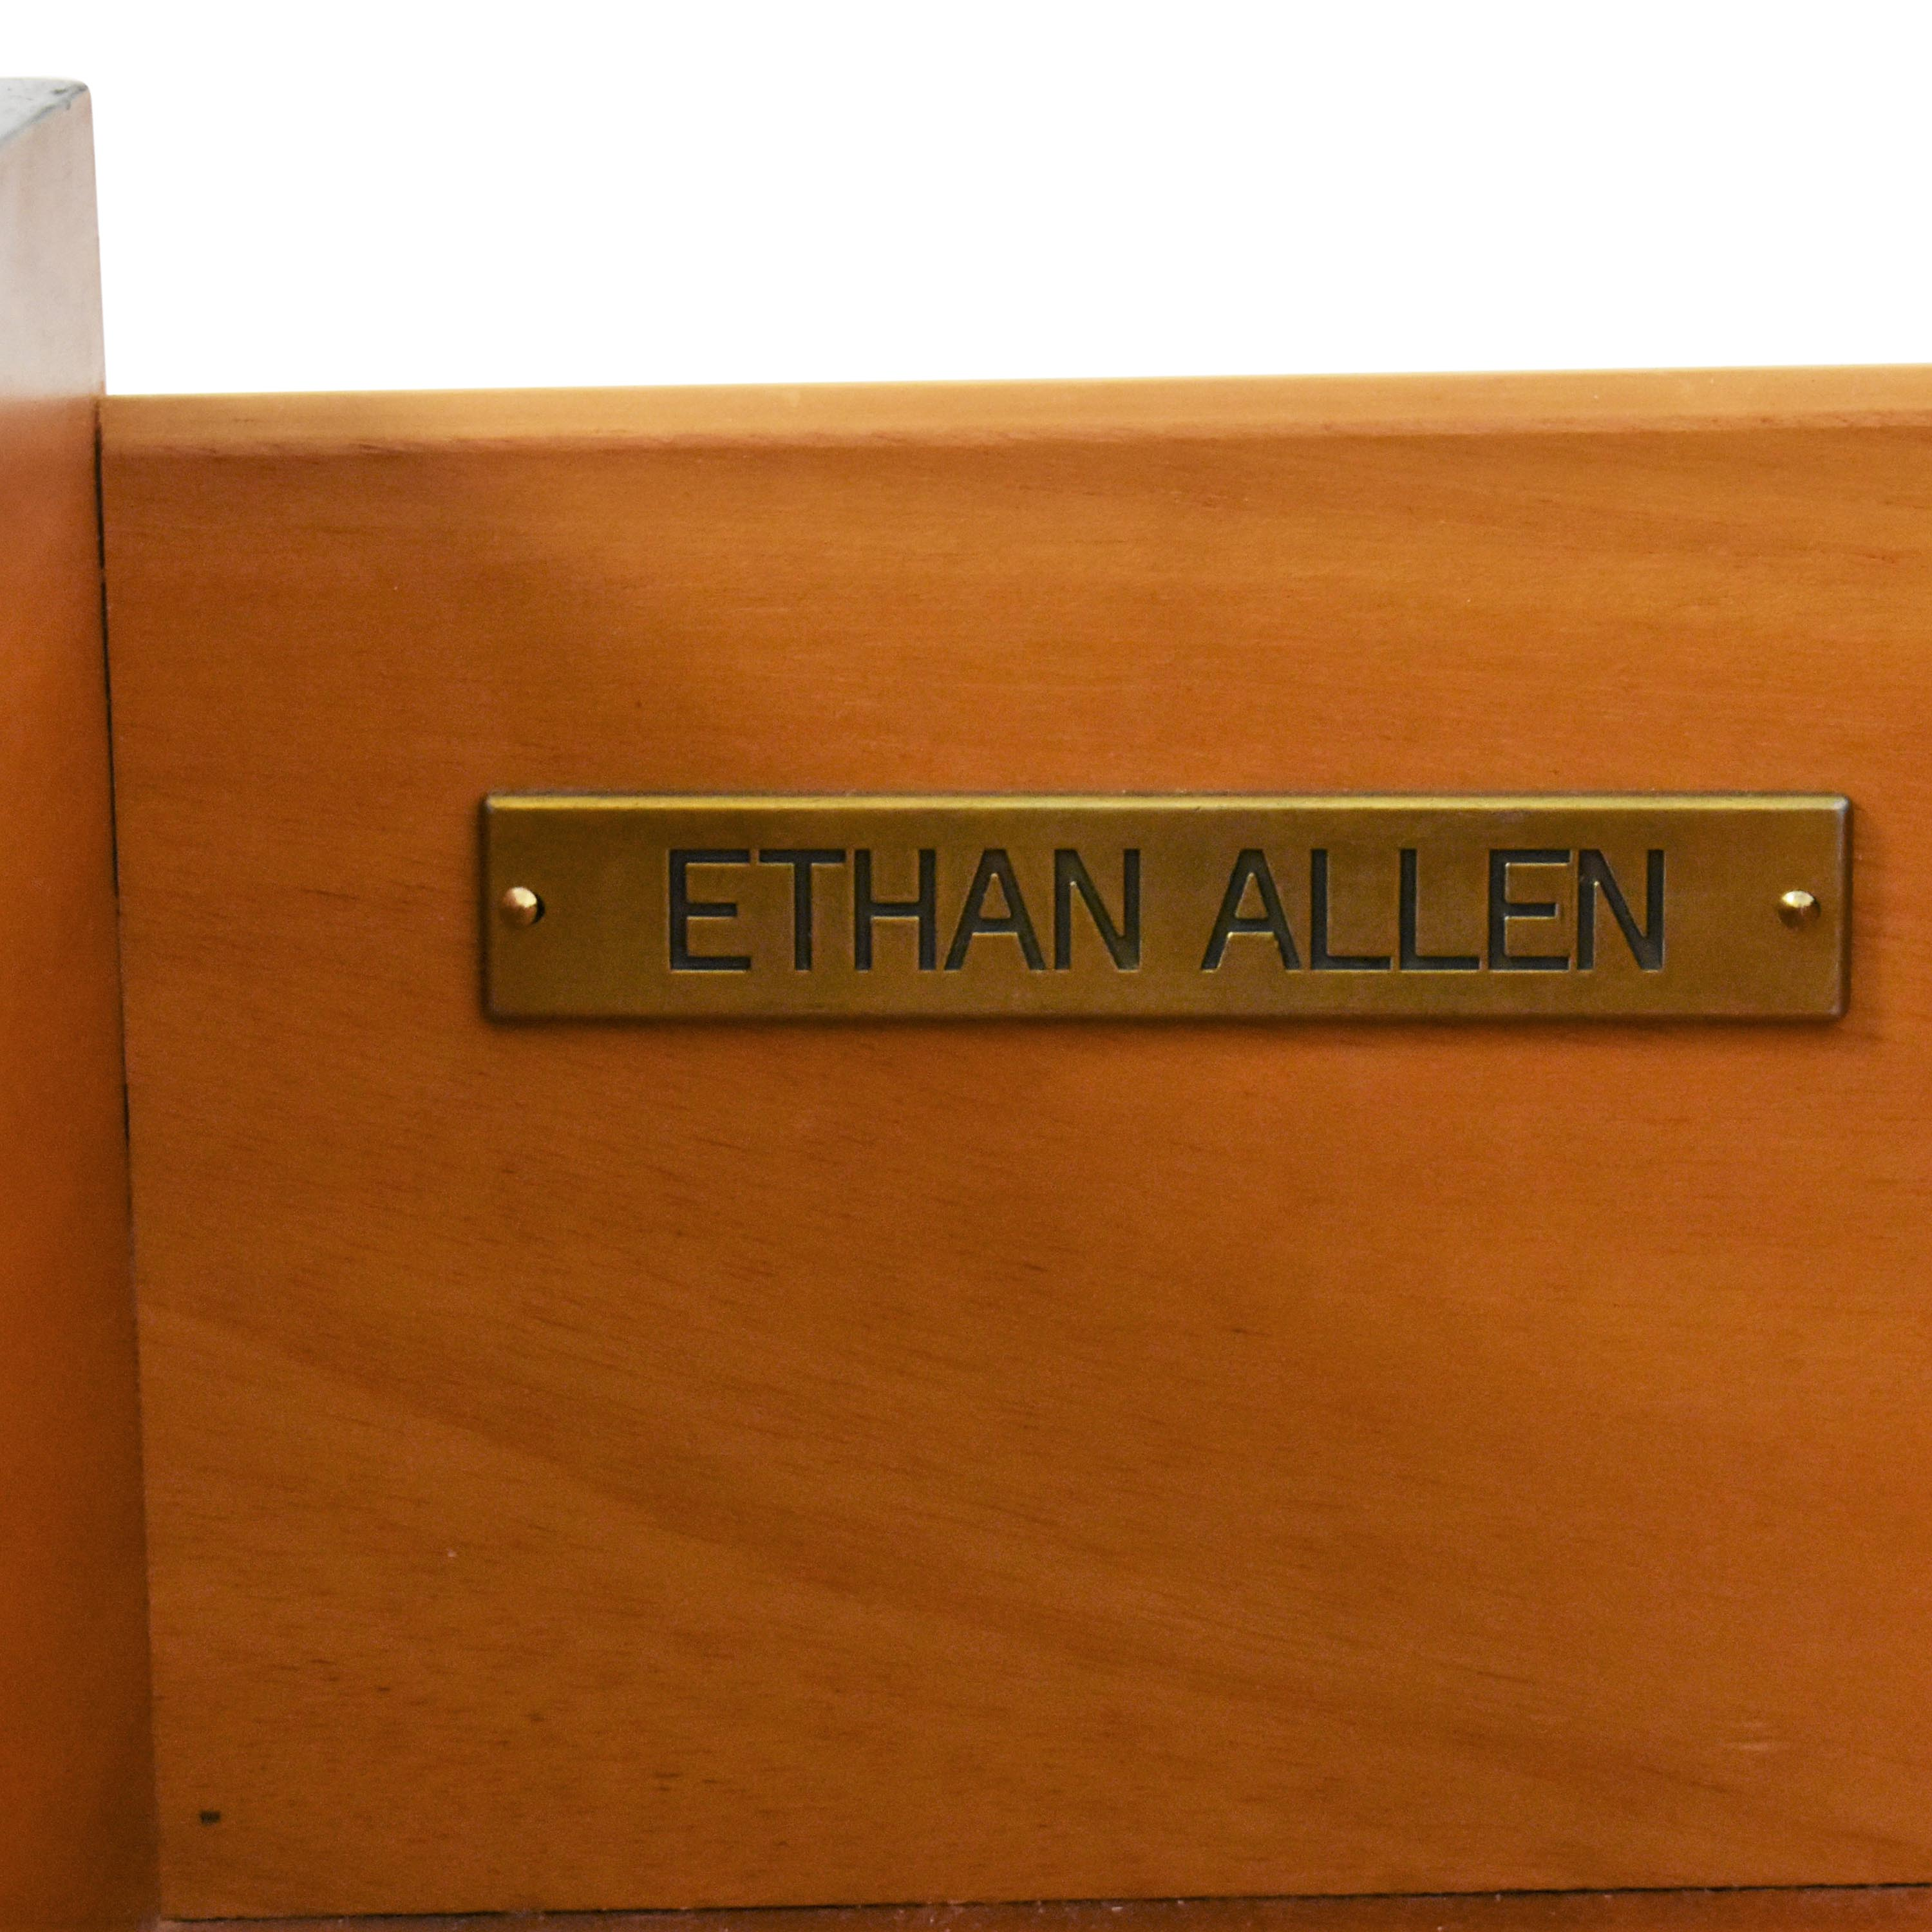 Ethan Allen Ethan Allen Side Table with Drawer dimensions